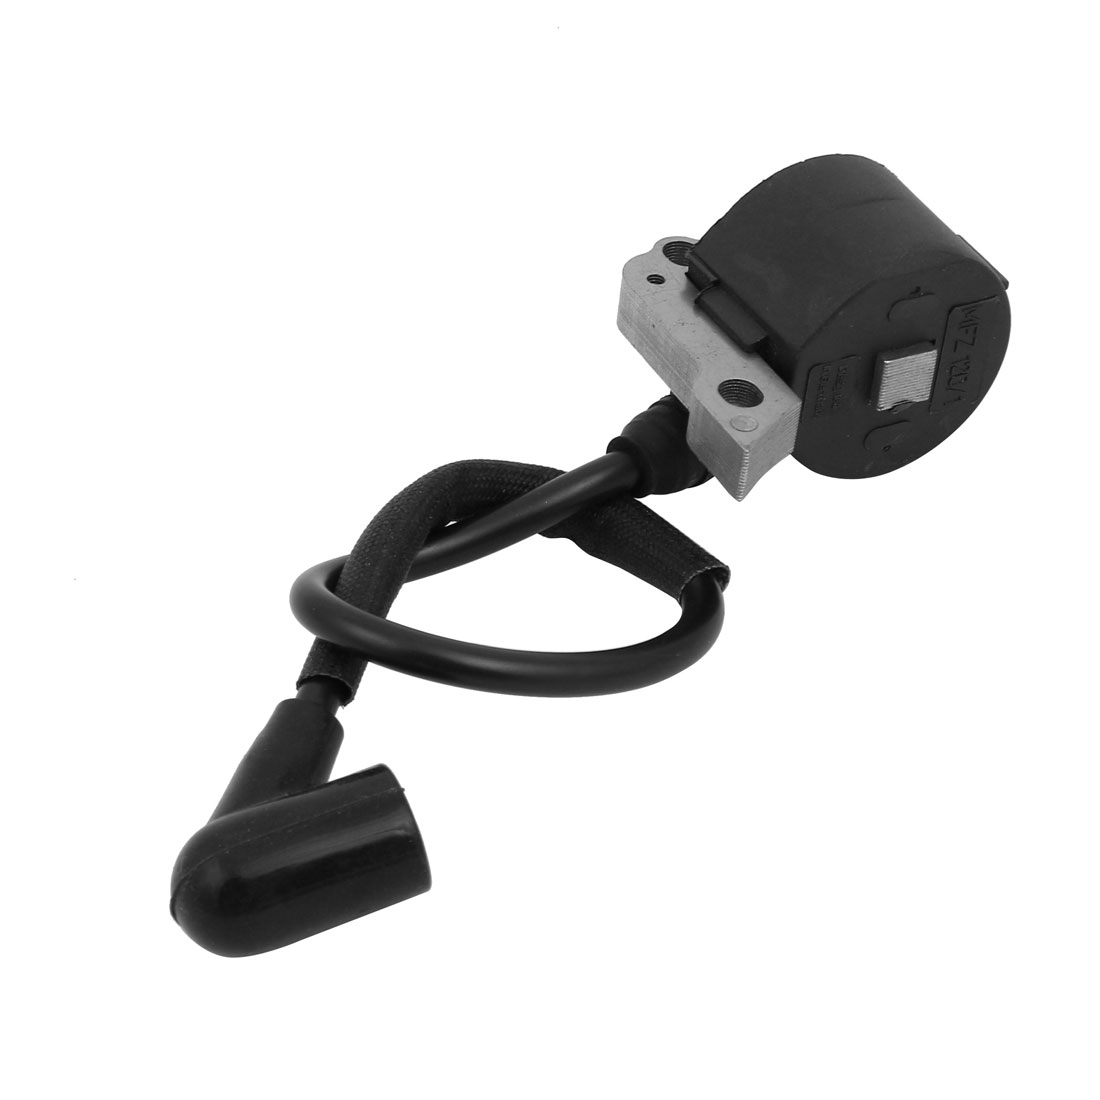 Unique Bargains Ignition Coil Wired Pit Electric Chain Saw Parts for Gasoline Engine Black D-111 - image 1 of 2